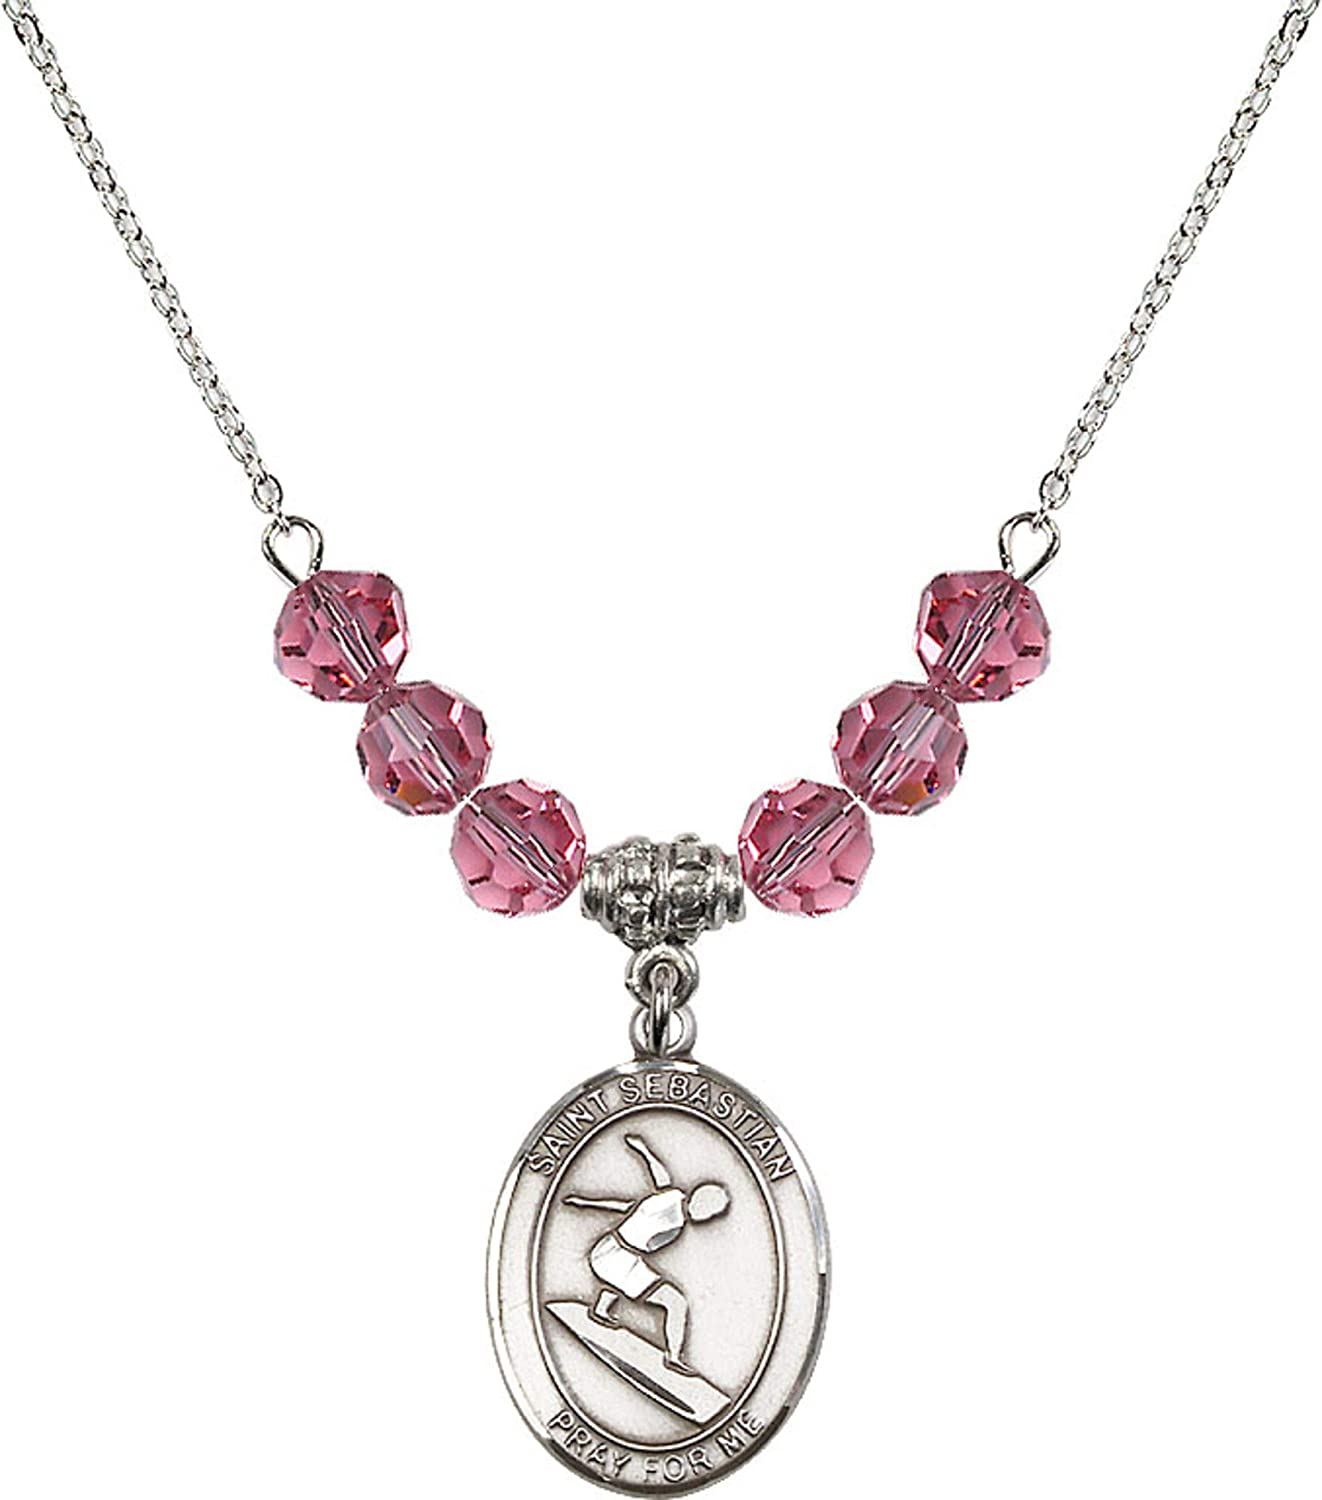 Bonyak Jewelry 18 Inch Rhodium Plated Necklace w// 6mm Rose Pink October Birth Month Stone Beads and Saint Sebastian//Surfing Charm